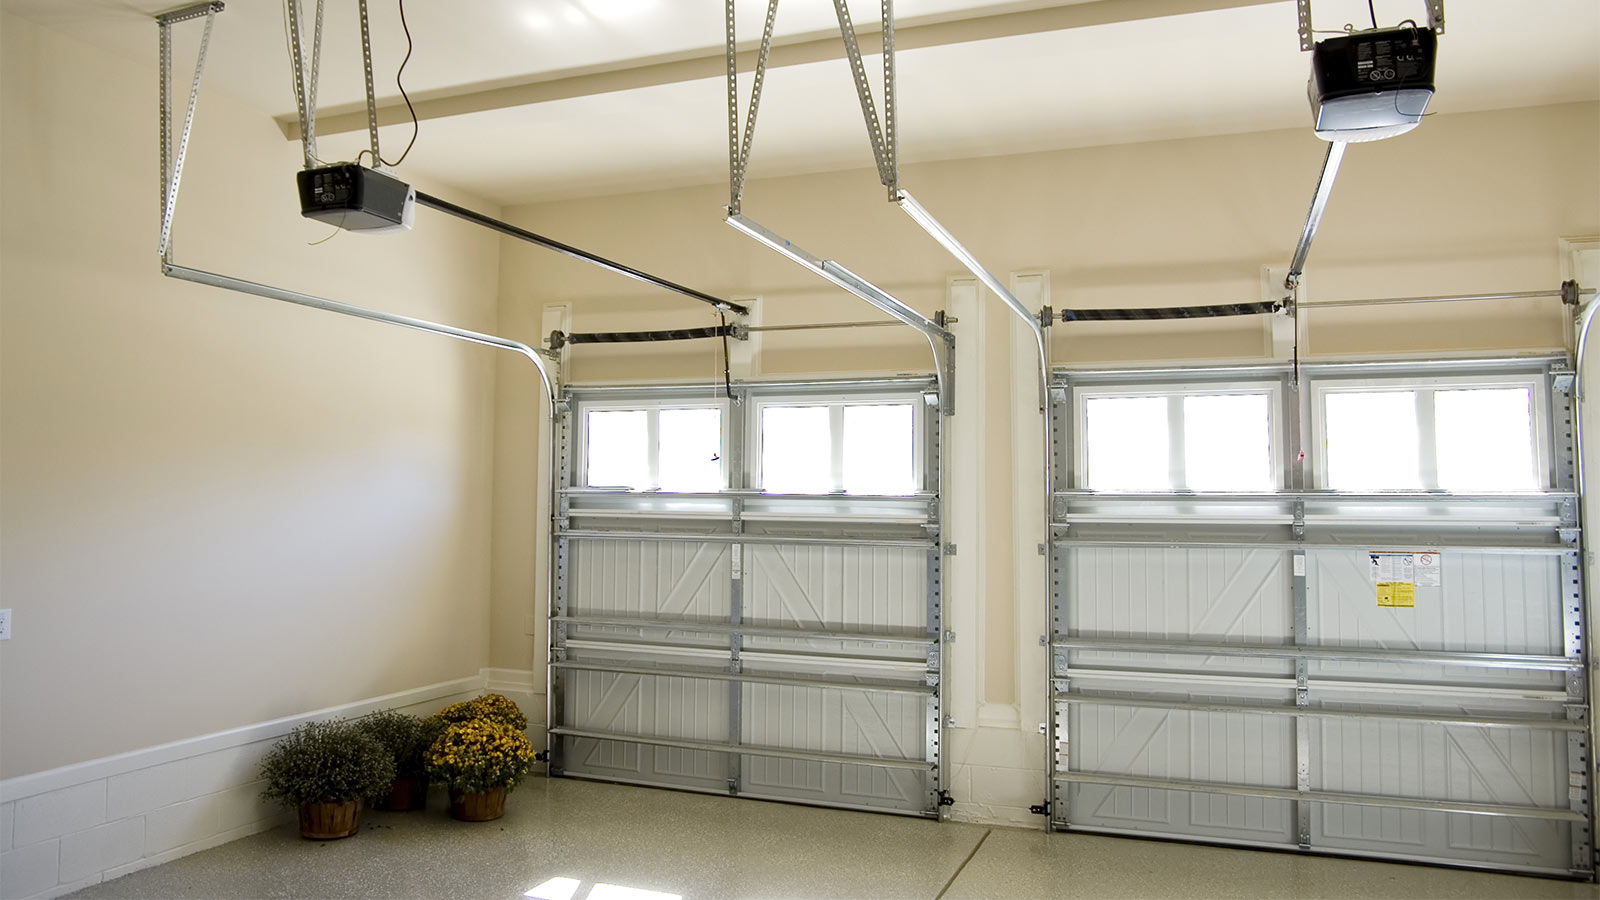 Sectional Garage Doors from Window Roller Shutters Suffolk suppliers.